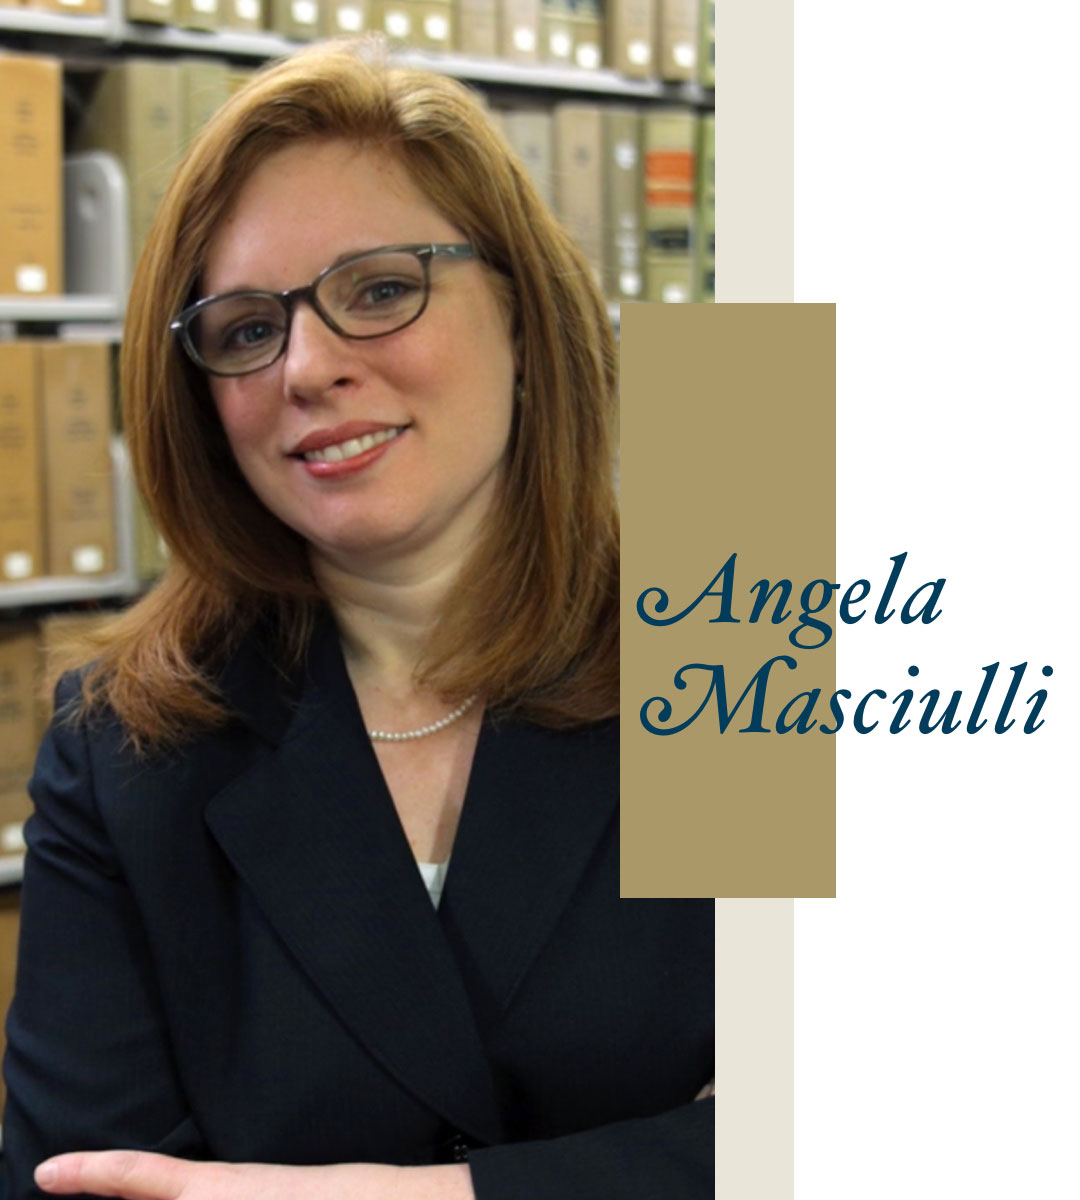 Testimonial from Angela Masciulli